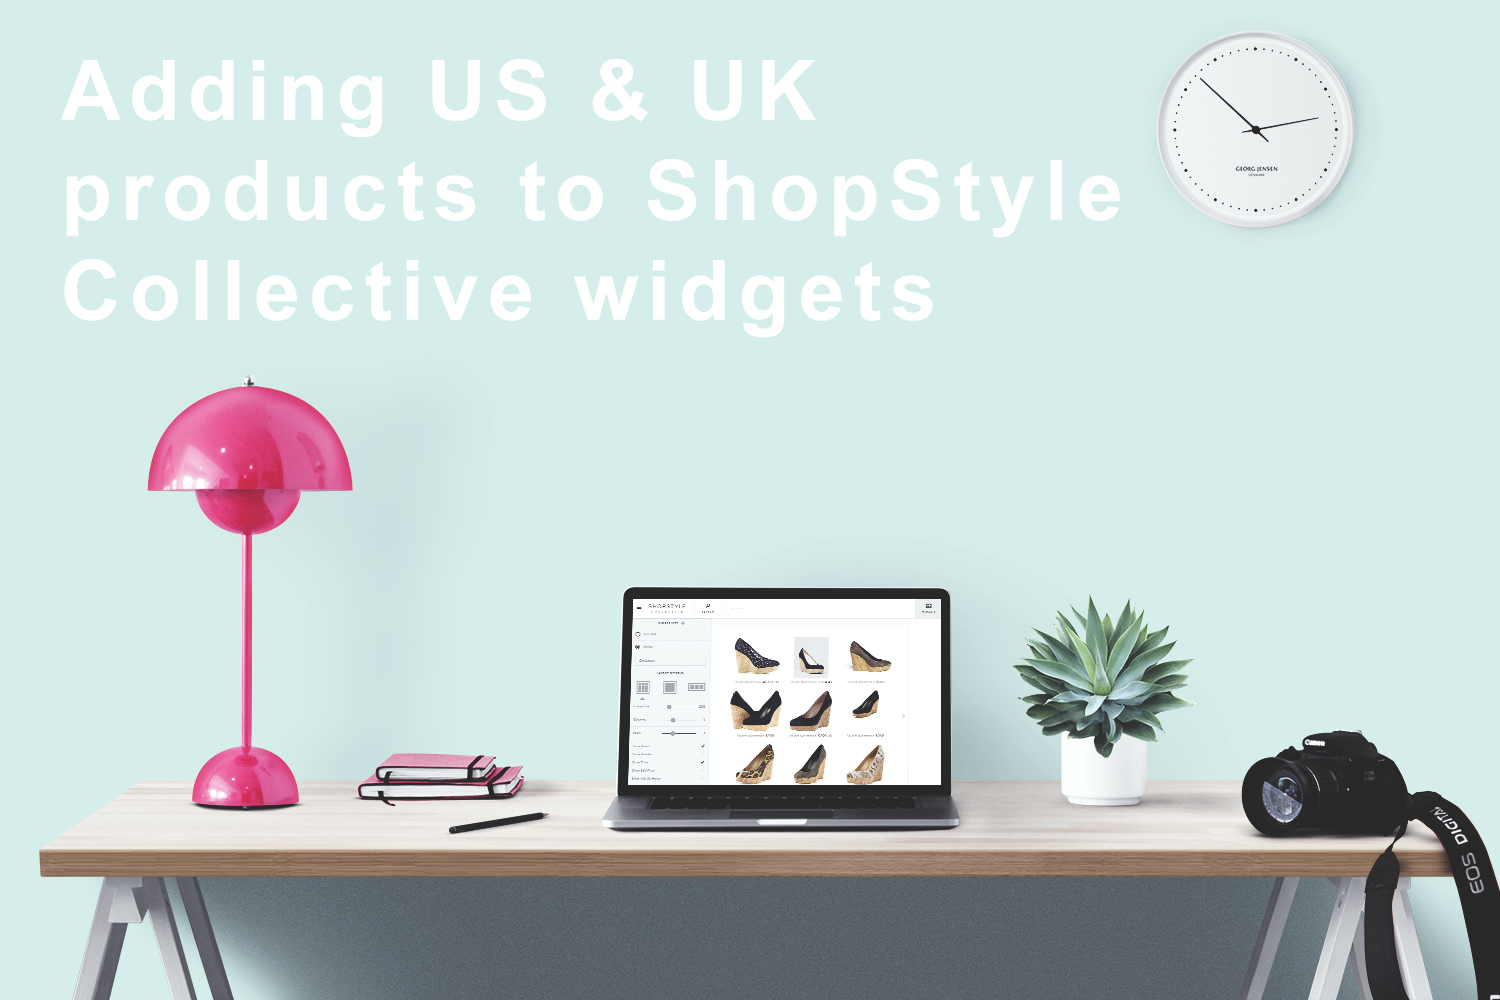 Adding US and UK products to ShopStyle Collective widgets